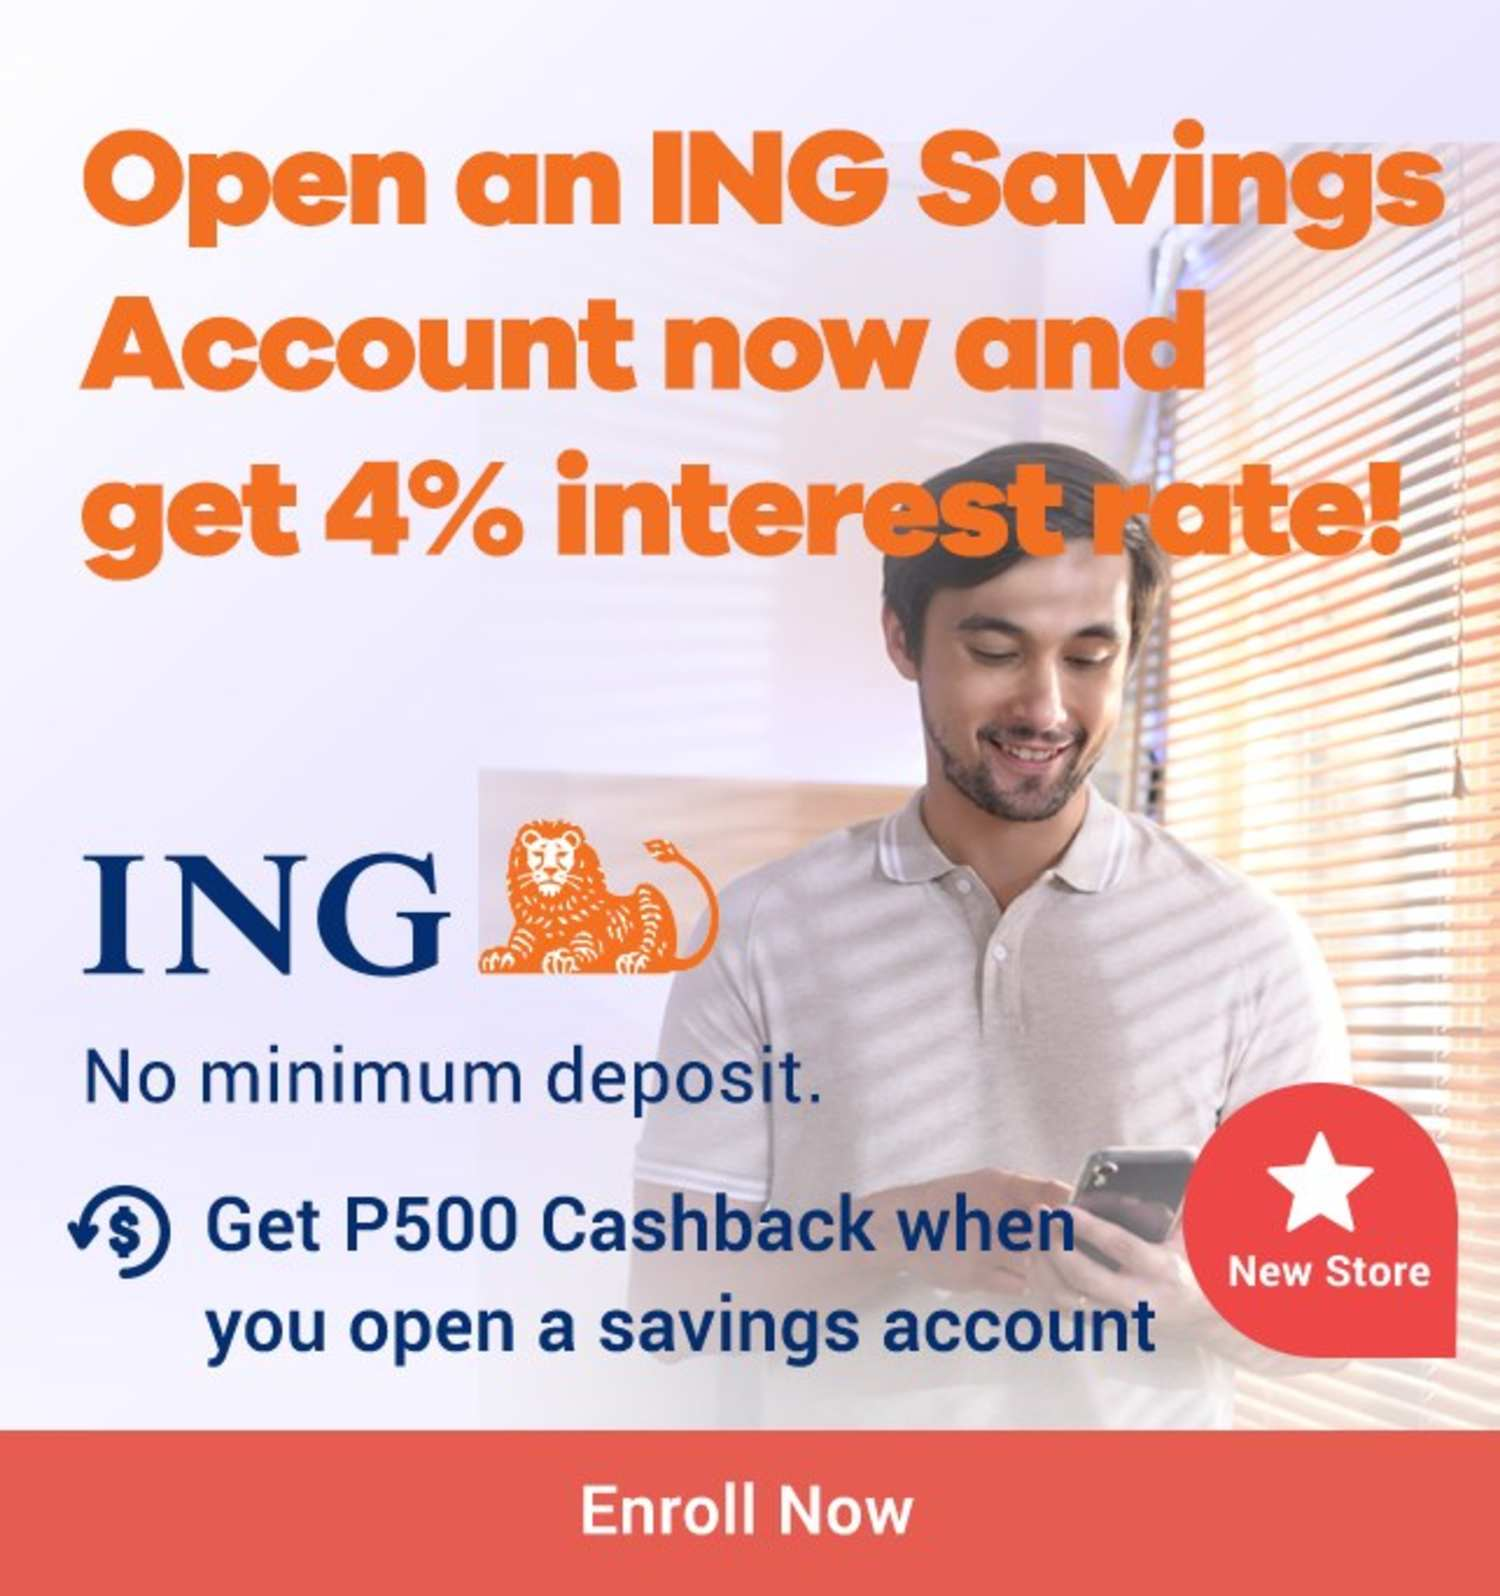 ING: Open an ING Savings account and get P500 Cashback